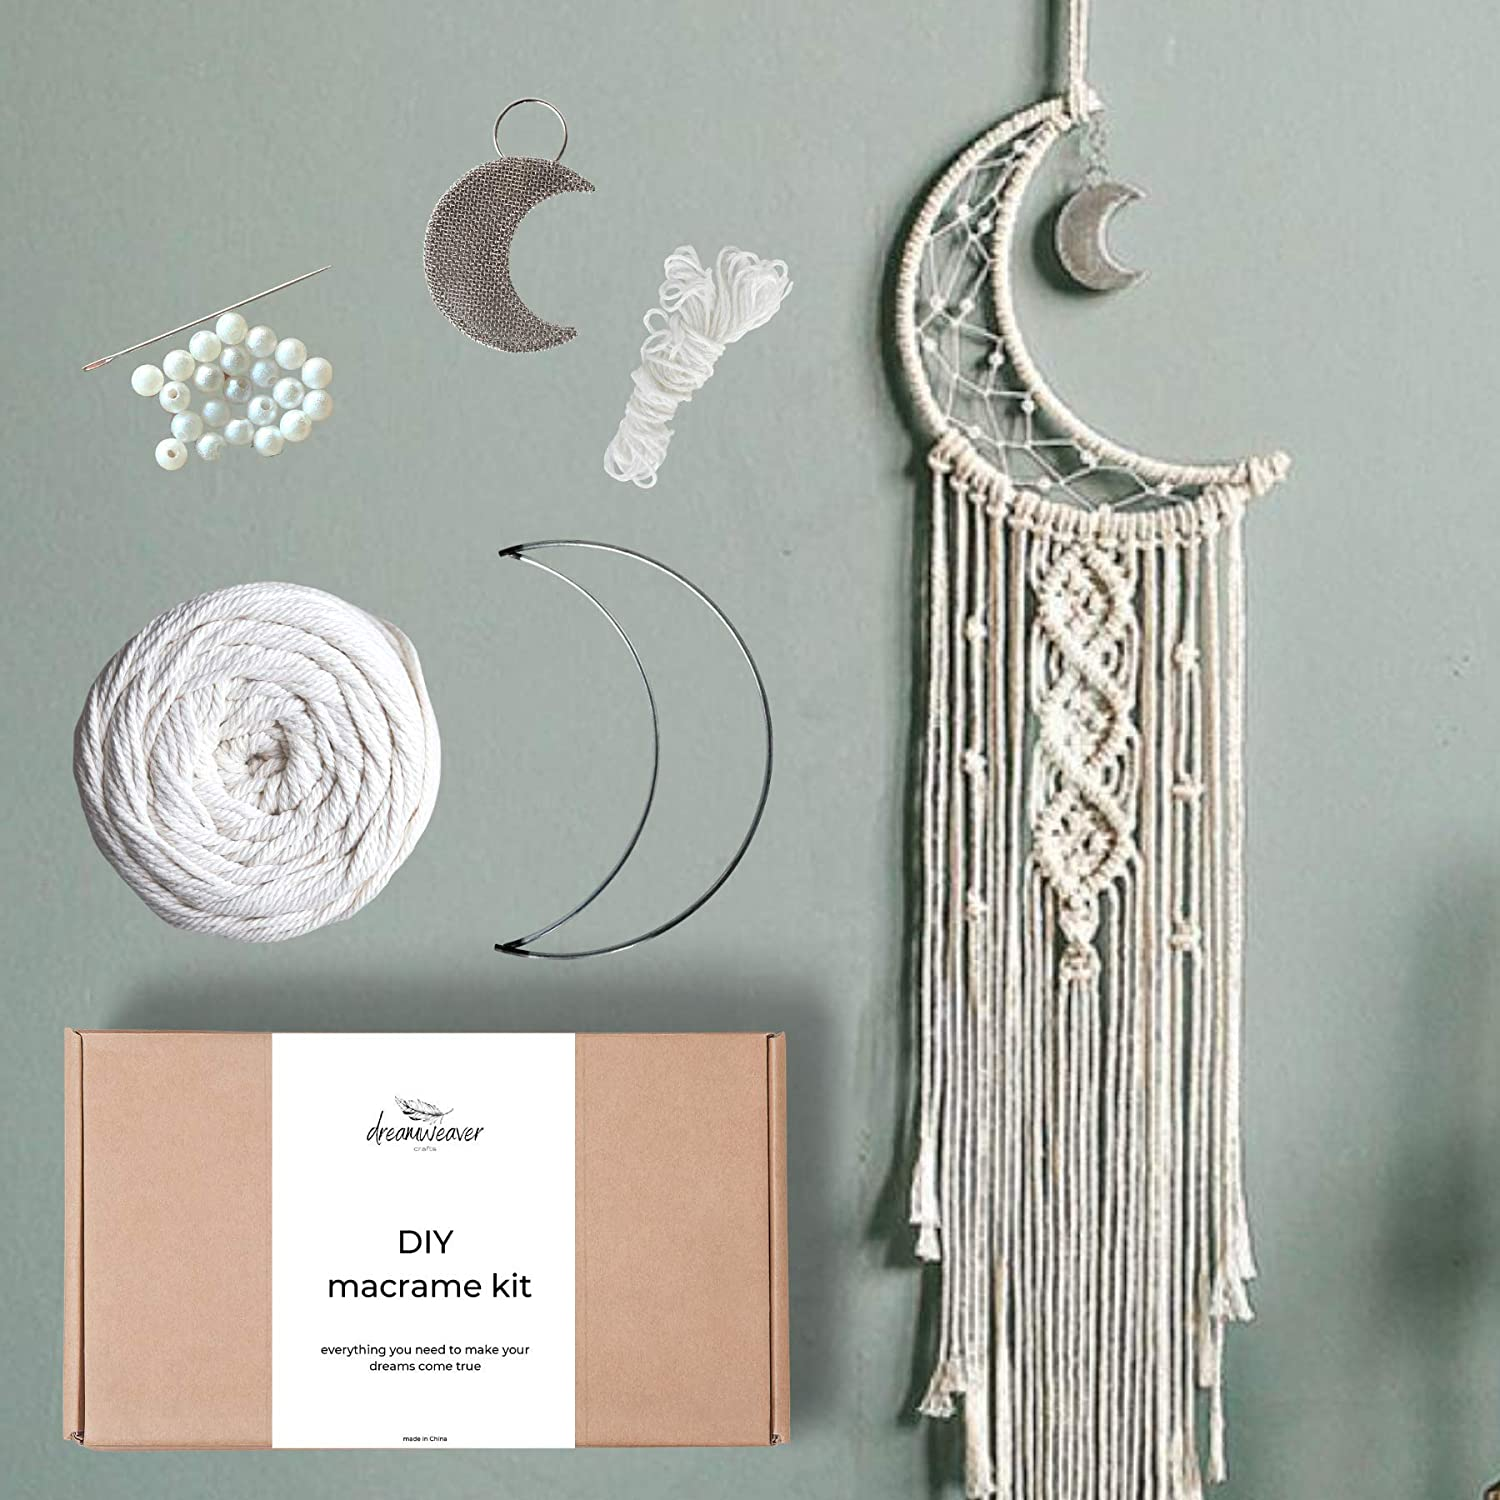 Macrame Dream Catcher Kit Macrame Cotton Cord 3mm x 100m with Moon Star Circle Metal Rings Hoops Macrame Supplies for DIY Dreamcatcher Home Decor Wall Hanging Crafts